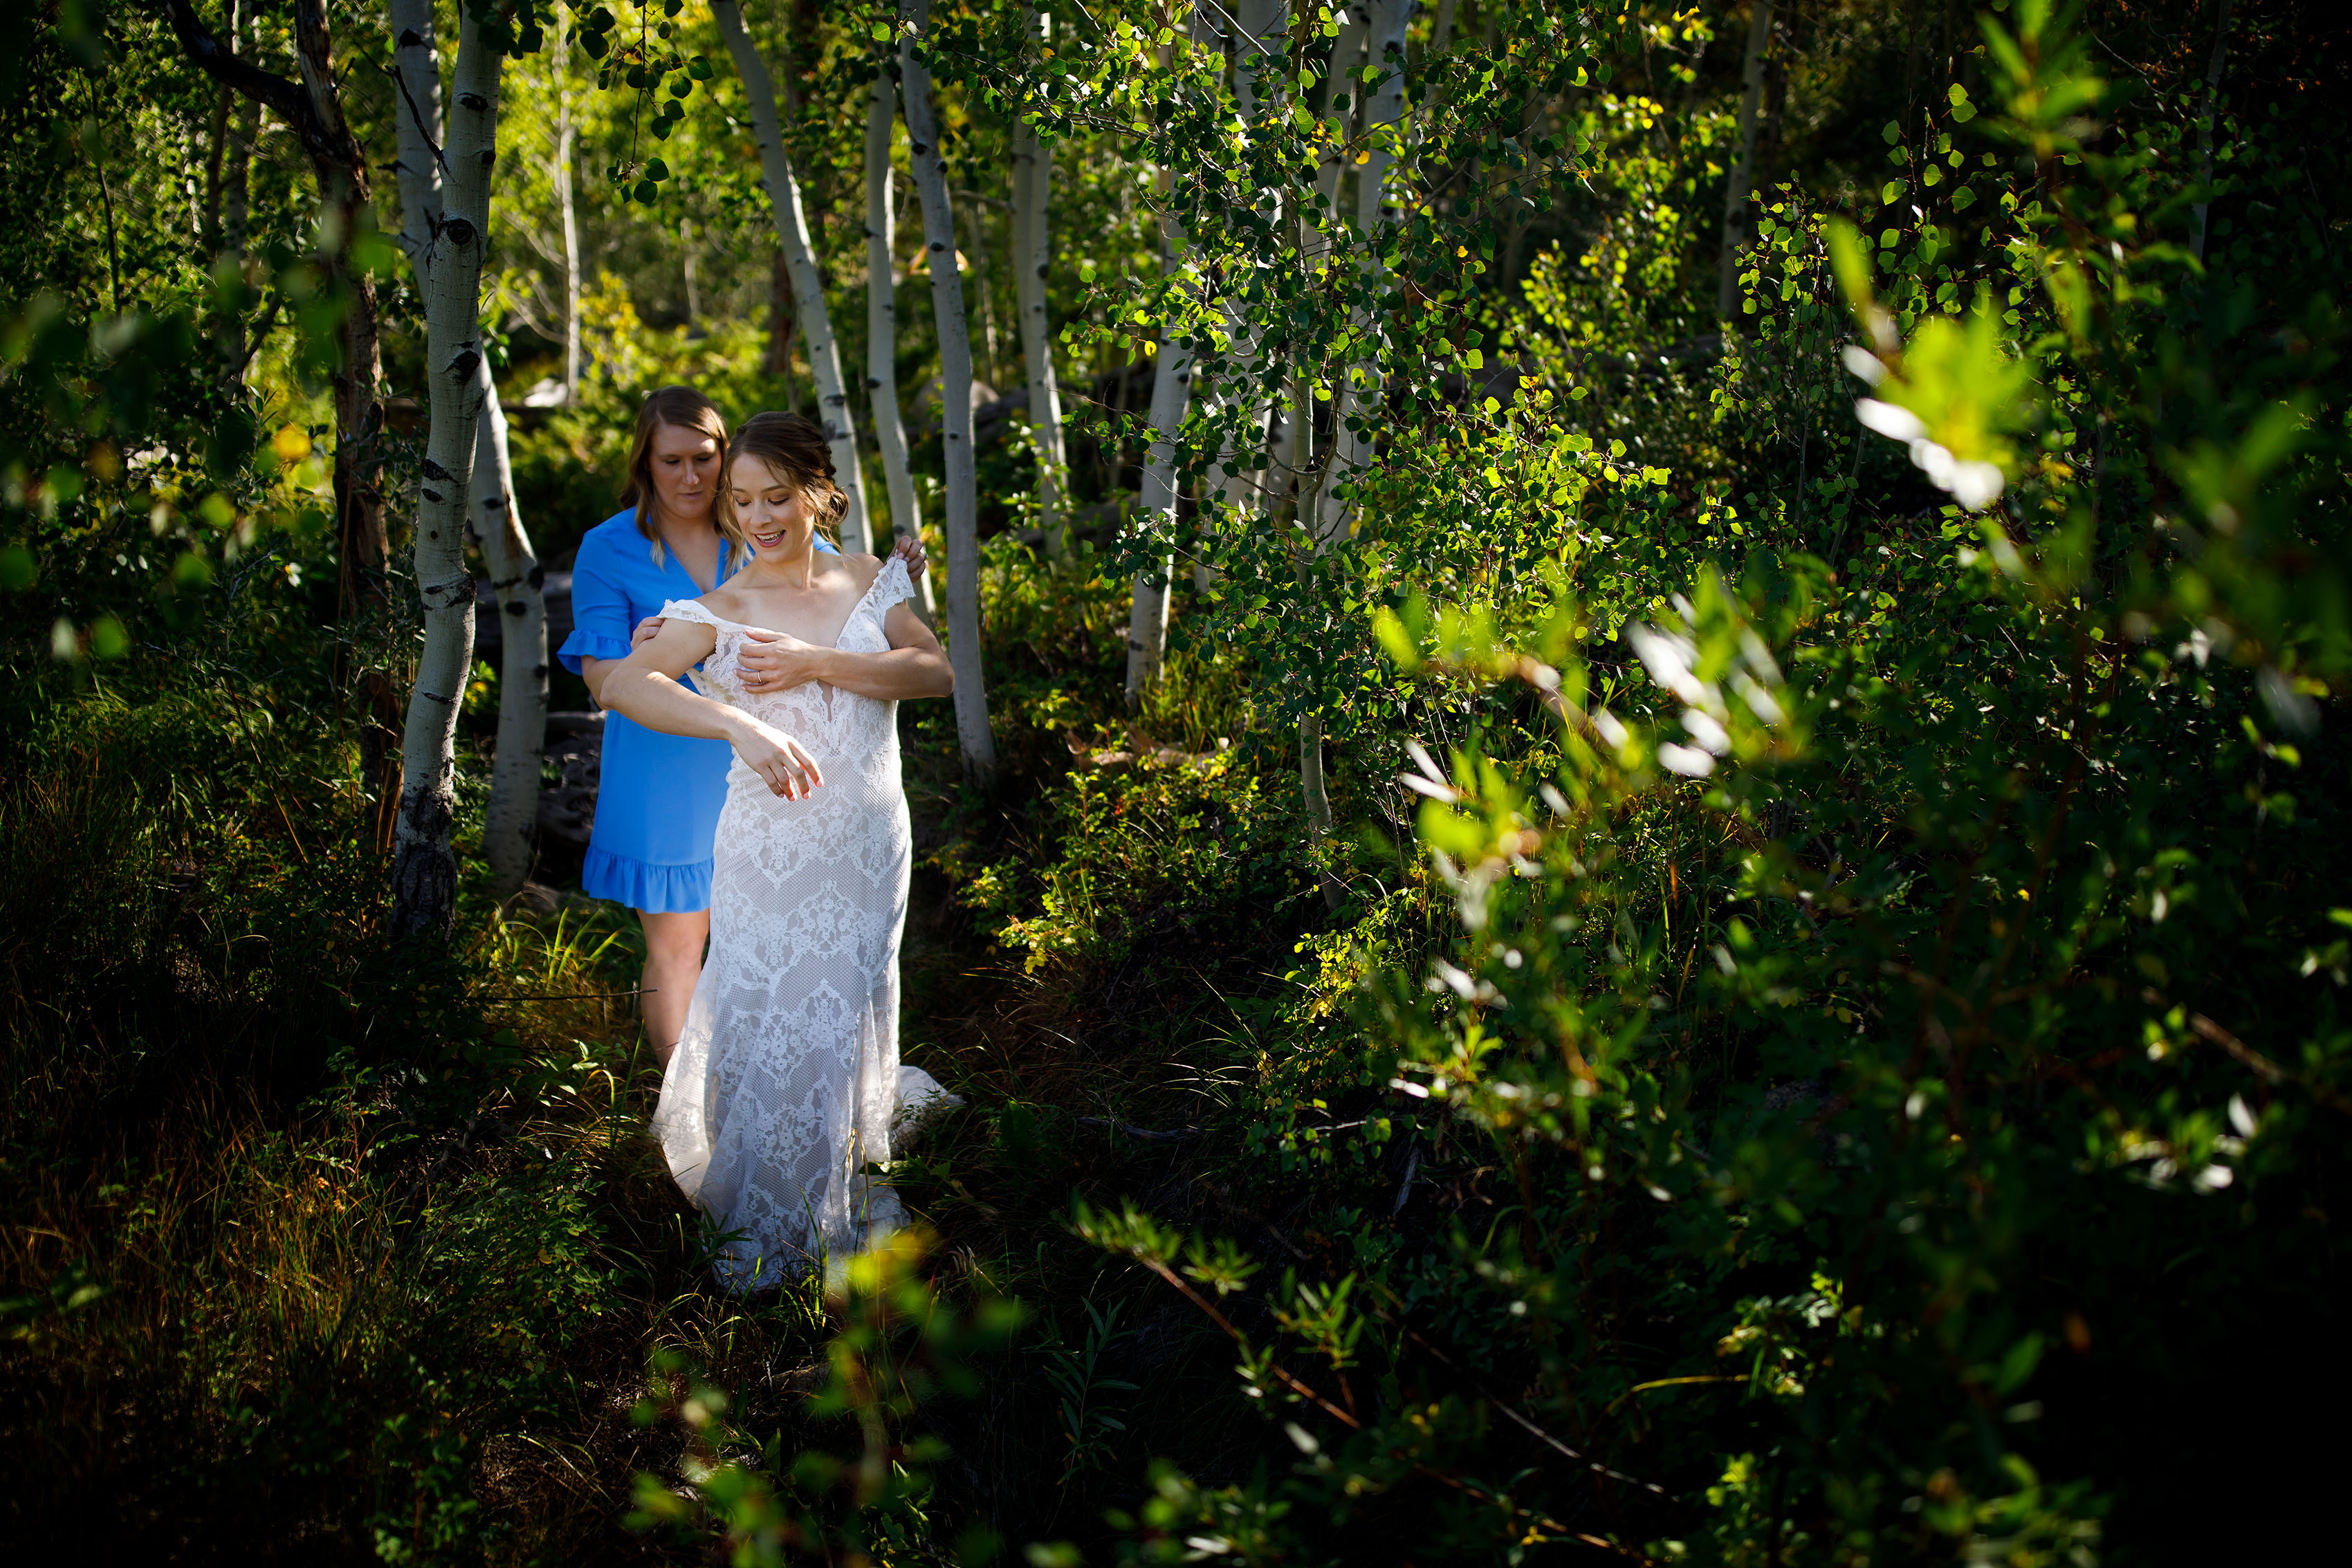 Carissa gets help putting her wedding dress on in an aspen grove